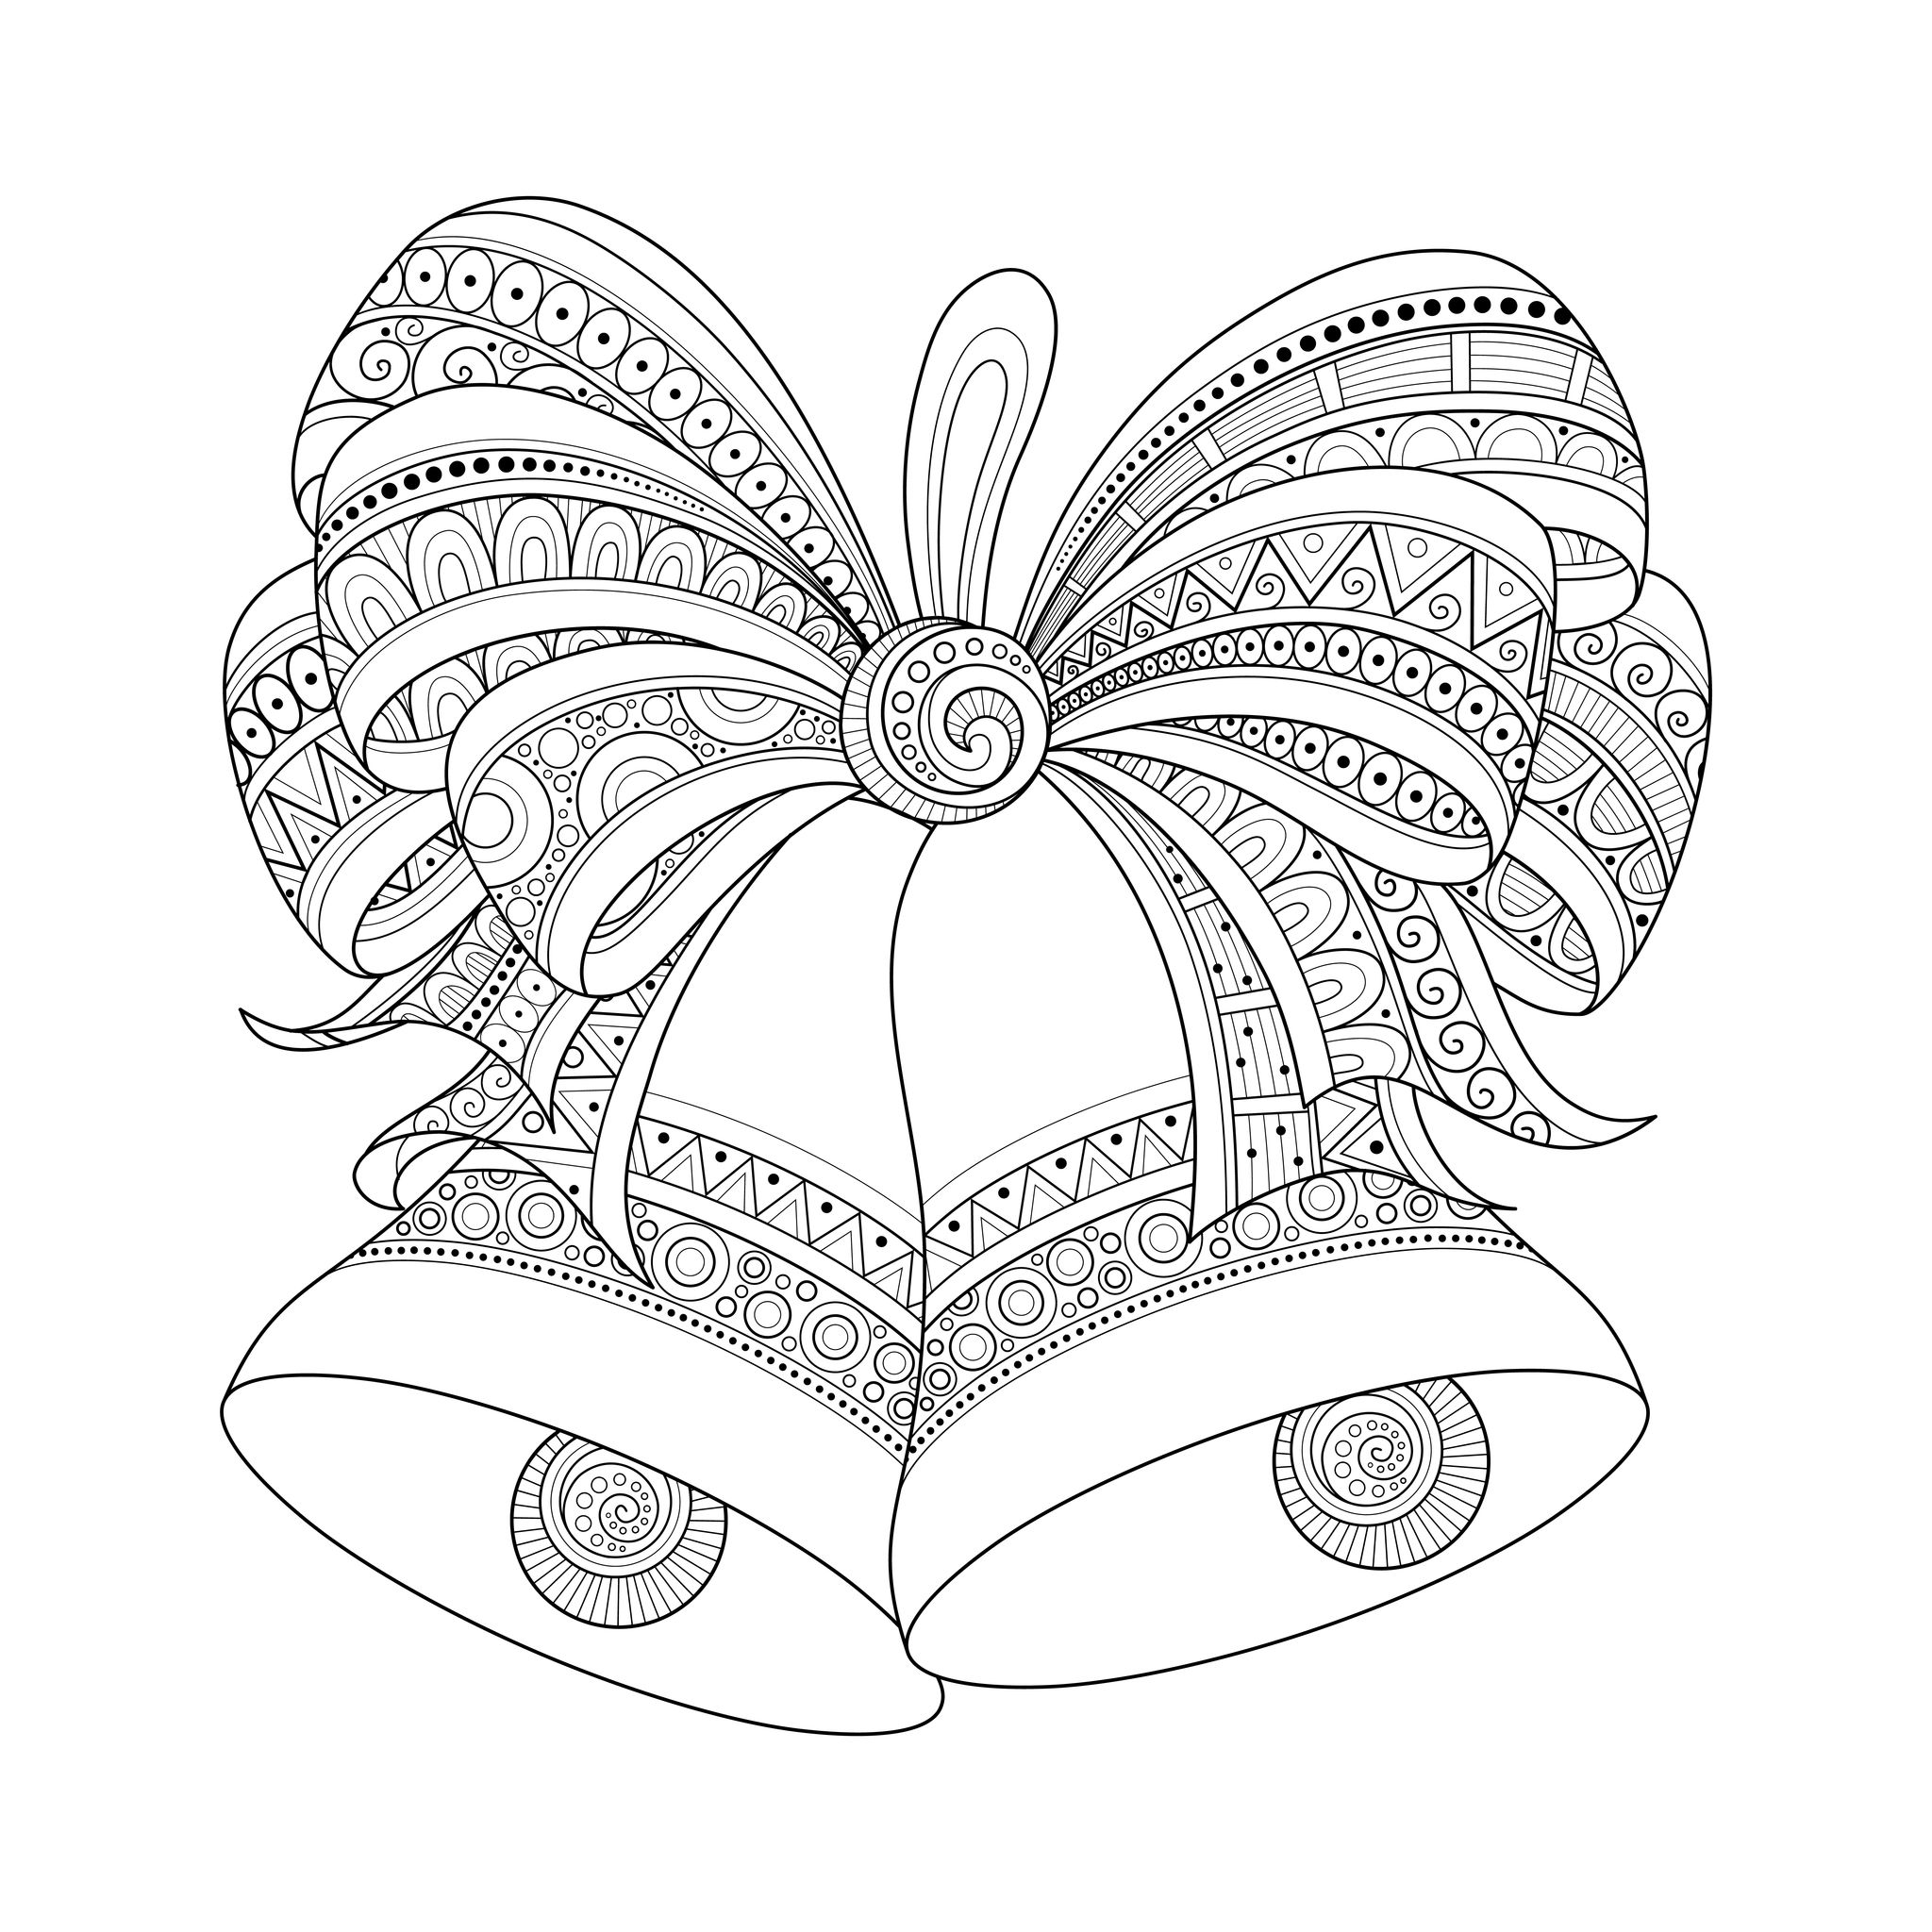 48433033 - ornate monochrome christmas golden bells with red bow. patterned objects for coloring books. new year and christmas template | A partir de la galerie : Noel